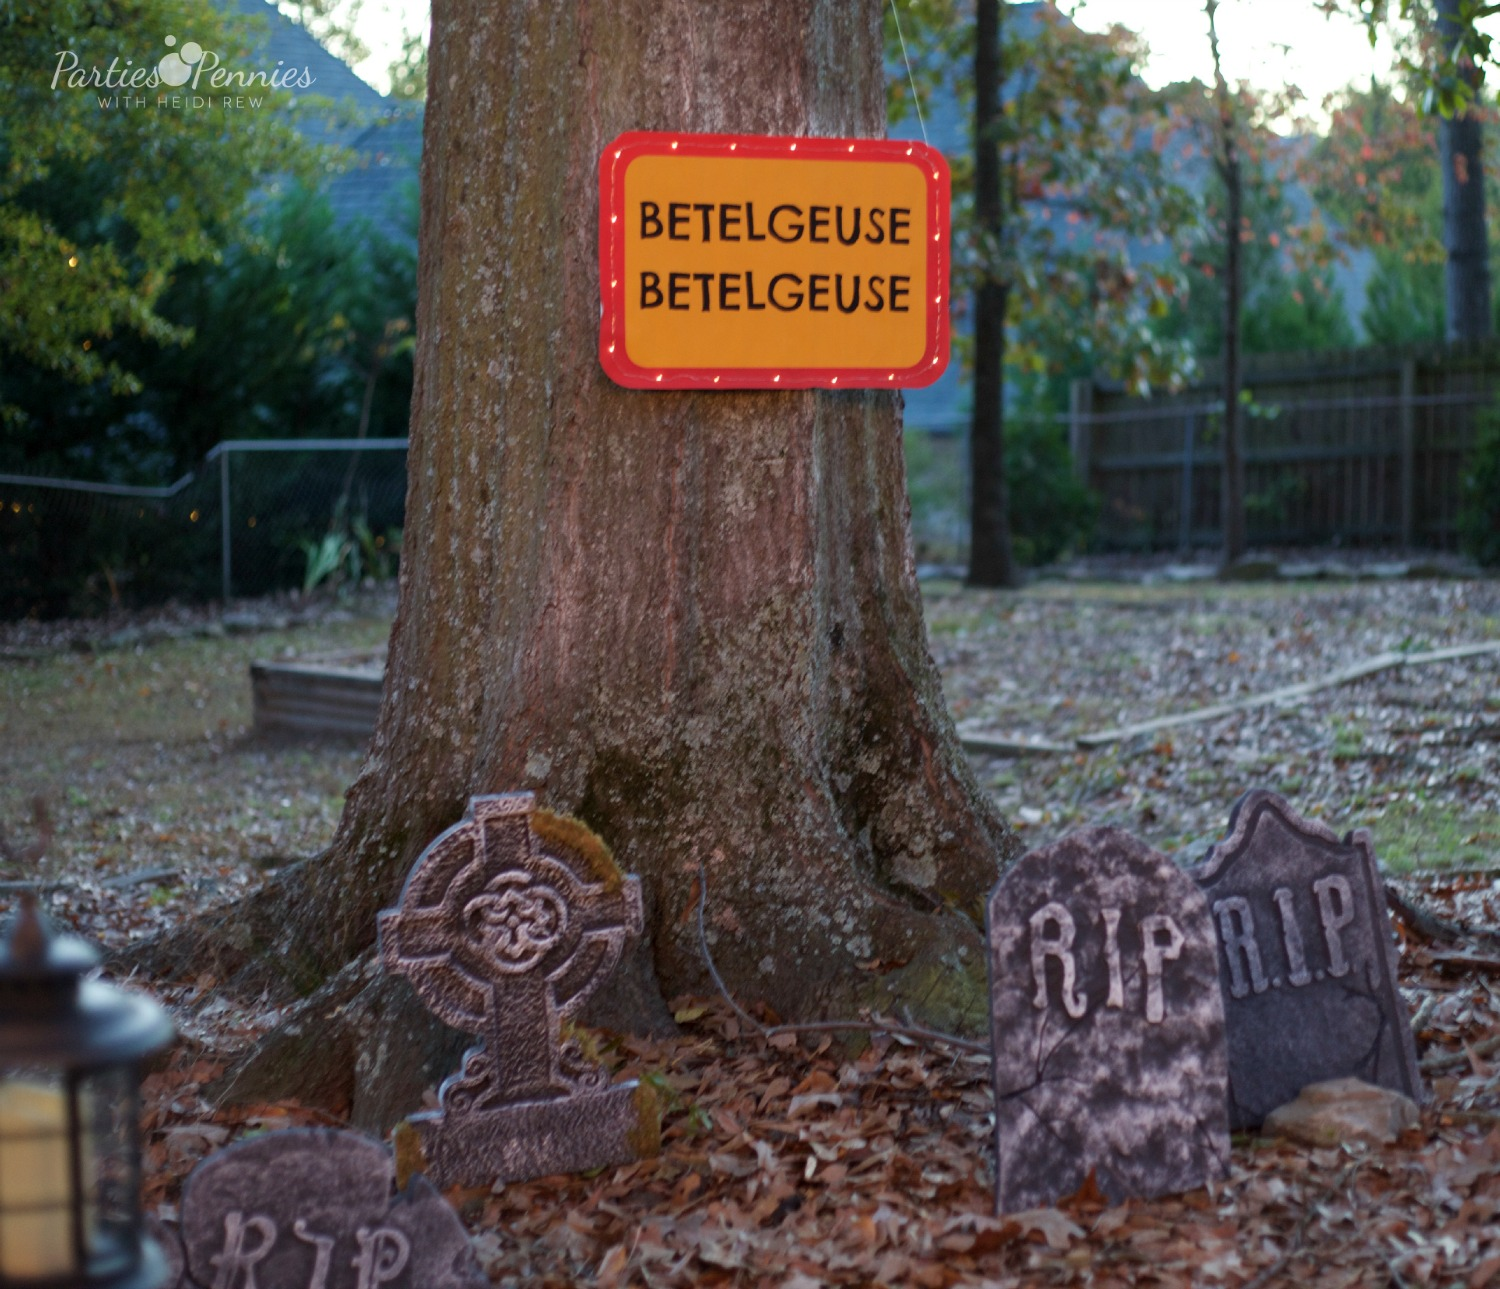 Beetlejuice Halloween Party | PartiesforPennies.com | Betelgeuse Graveyard